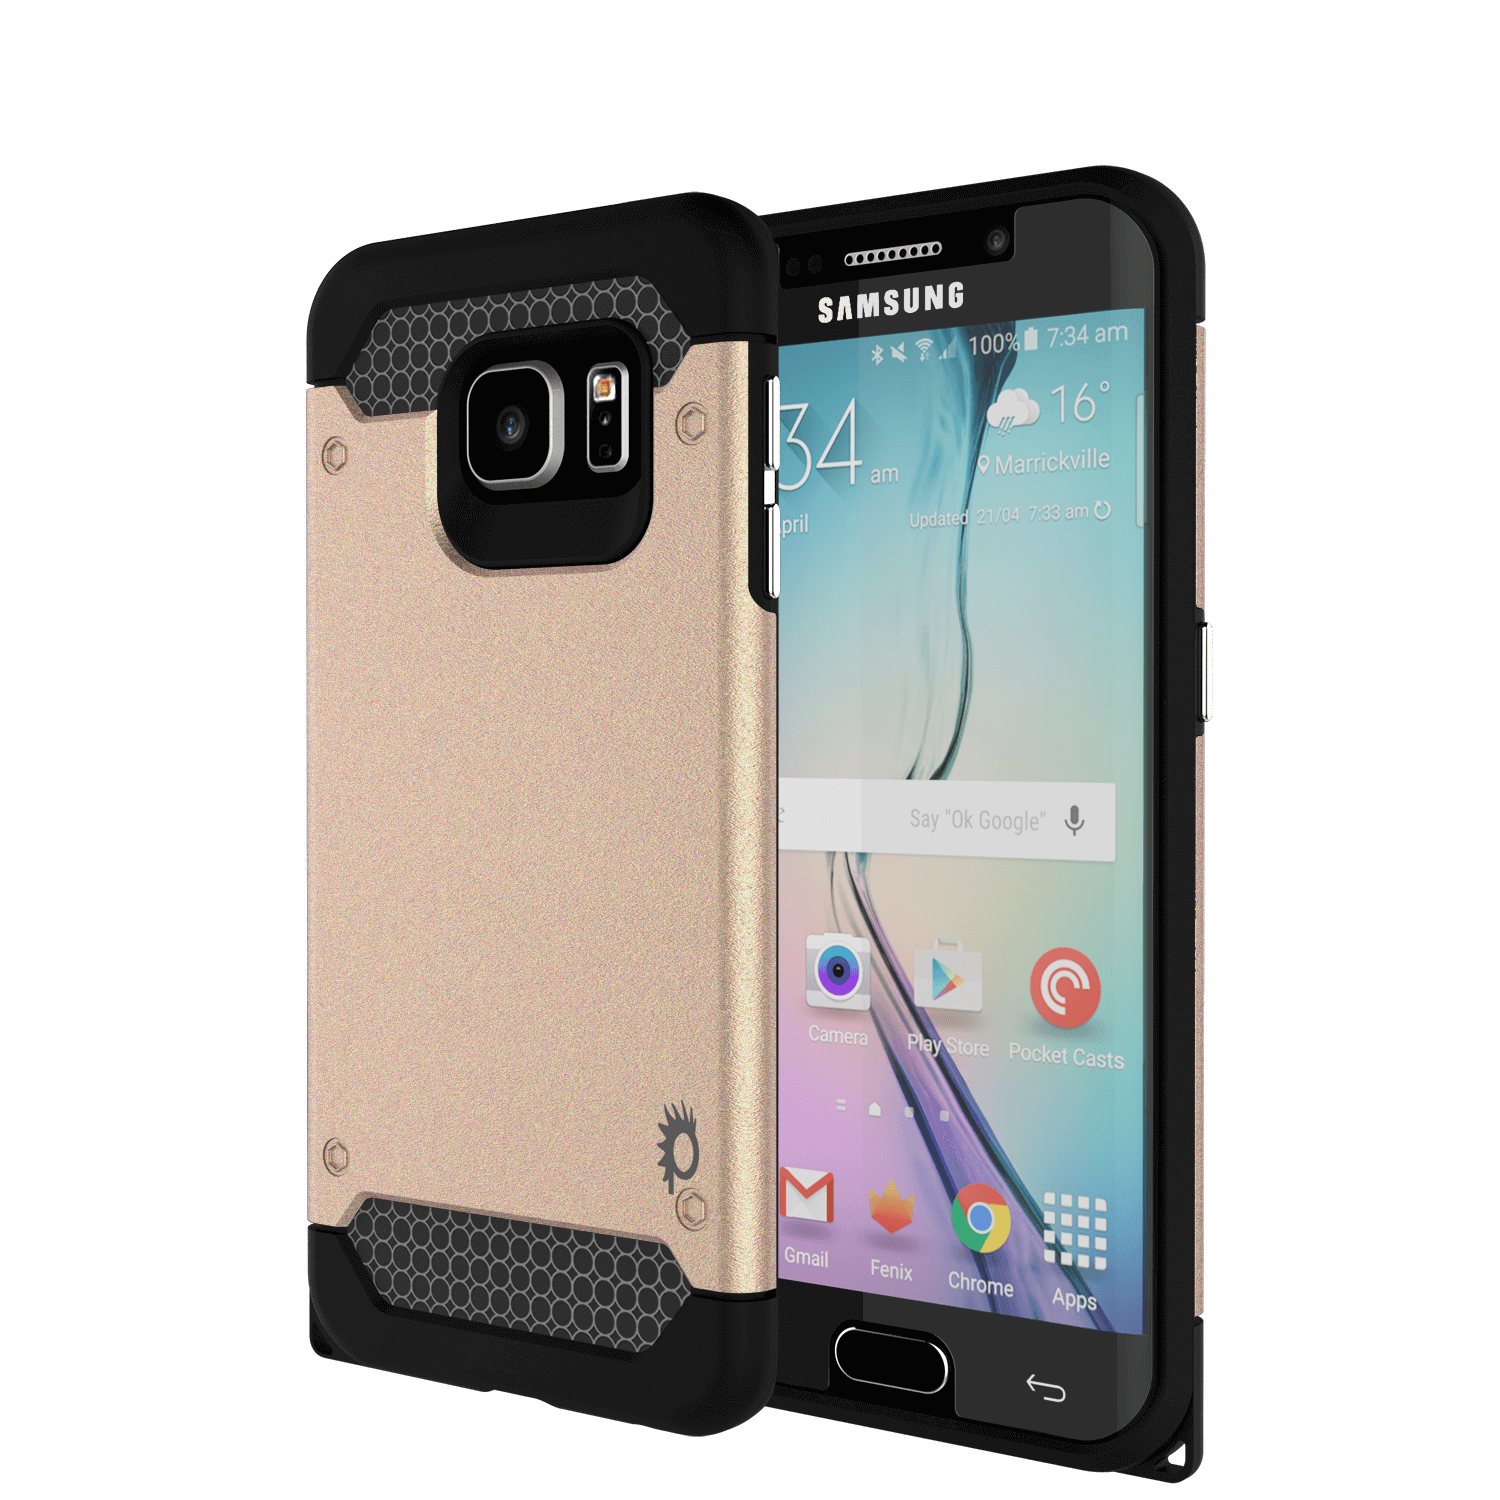 Galaxy s6 EDGE Plus Case PunkCase Galactic Gold Series Slim Armor Soft Cover w/ Screen Protector